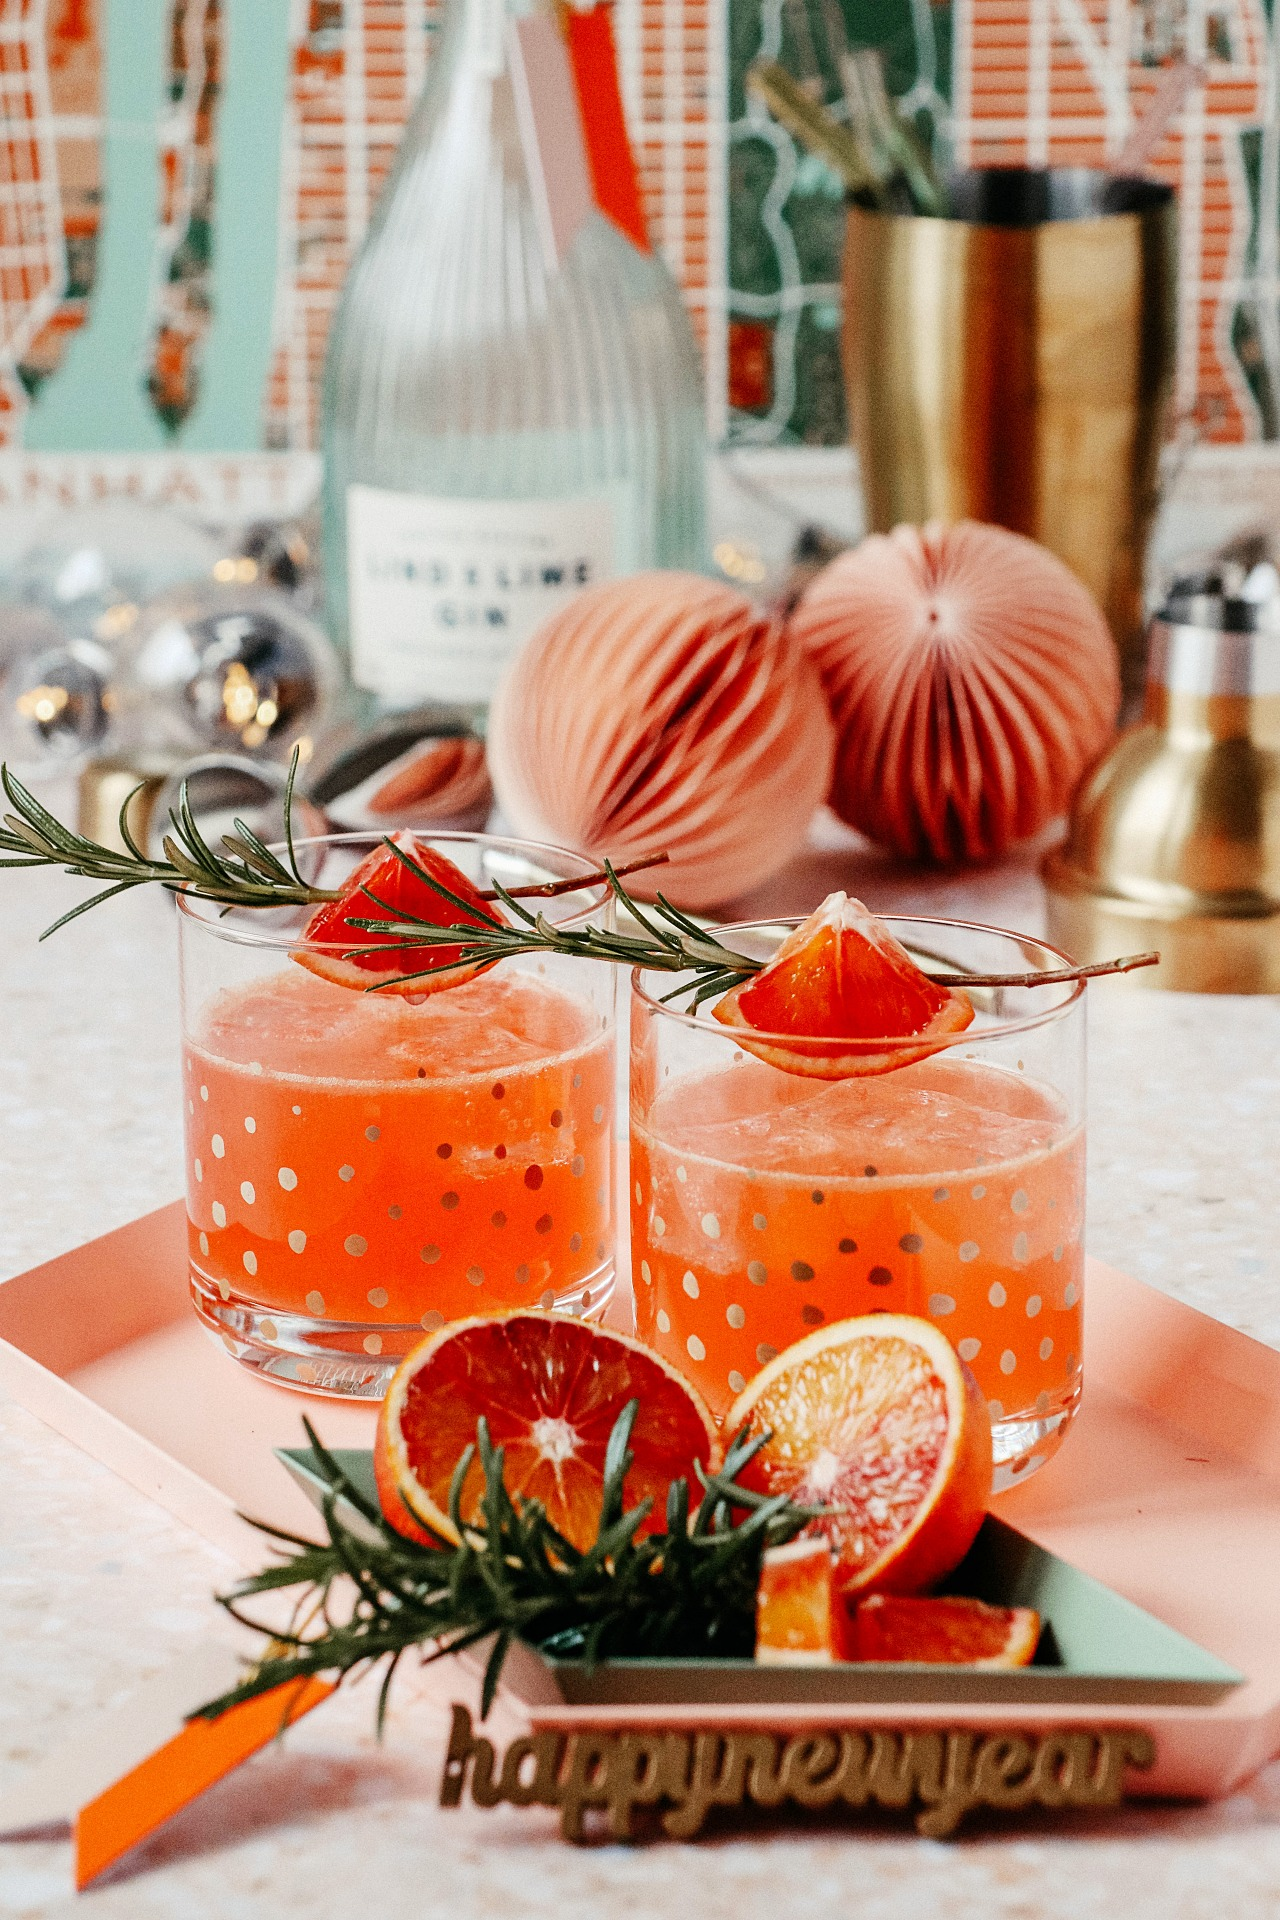 Gin Cocktail Rezept - Blutorangen & Rosmarin Gin Fizz – Blood Orange Rosemary Gin Tonic Recipe | luziapimpinella.com